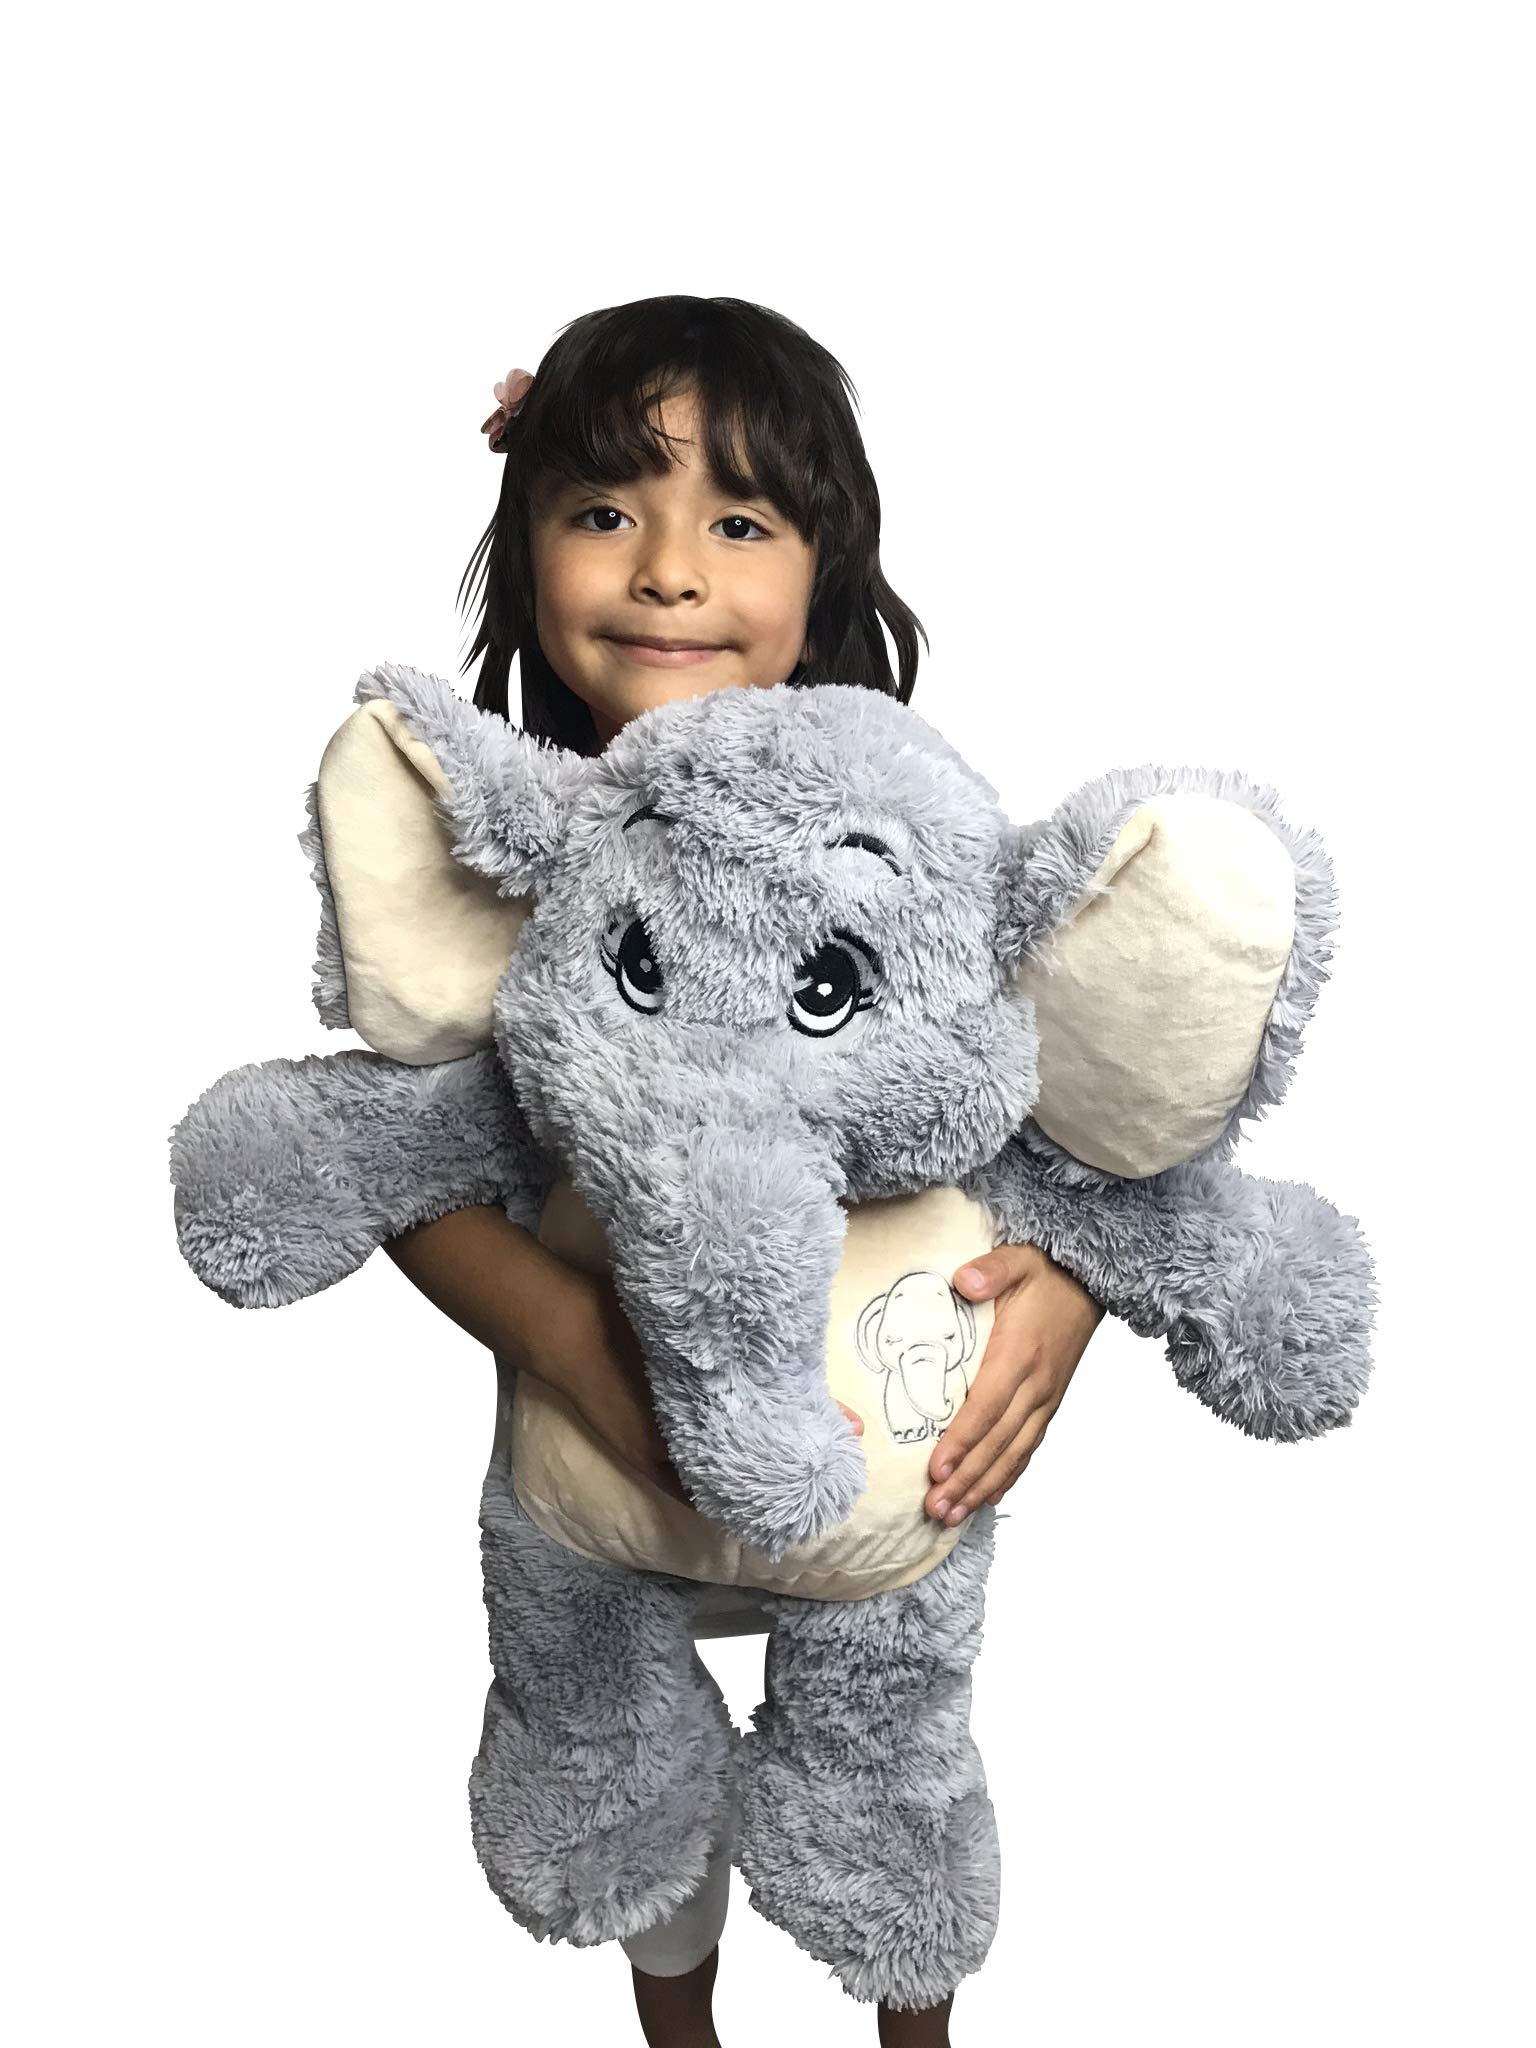 ECEJIX 24'' XL Elephant Stuffed Animal Plush Toys Gifts for Kids by ECEJIX